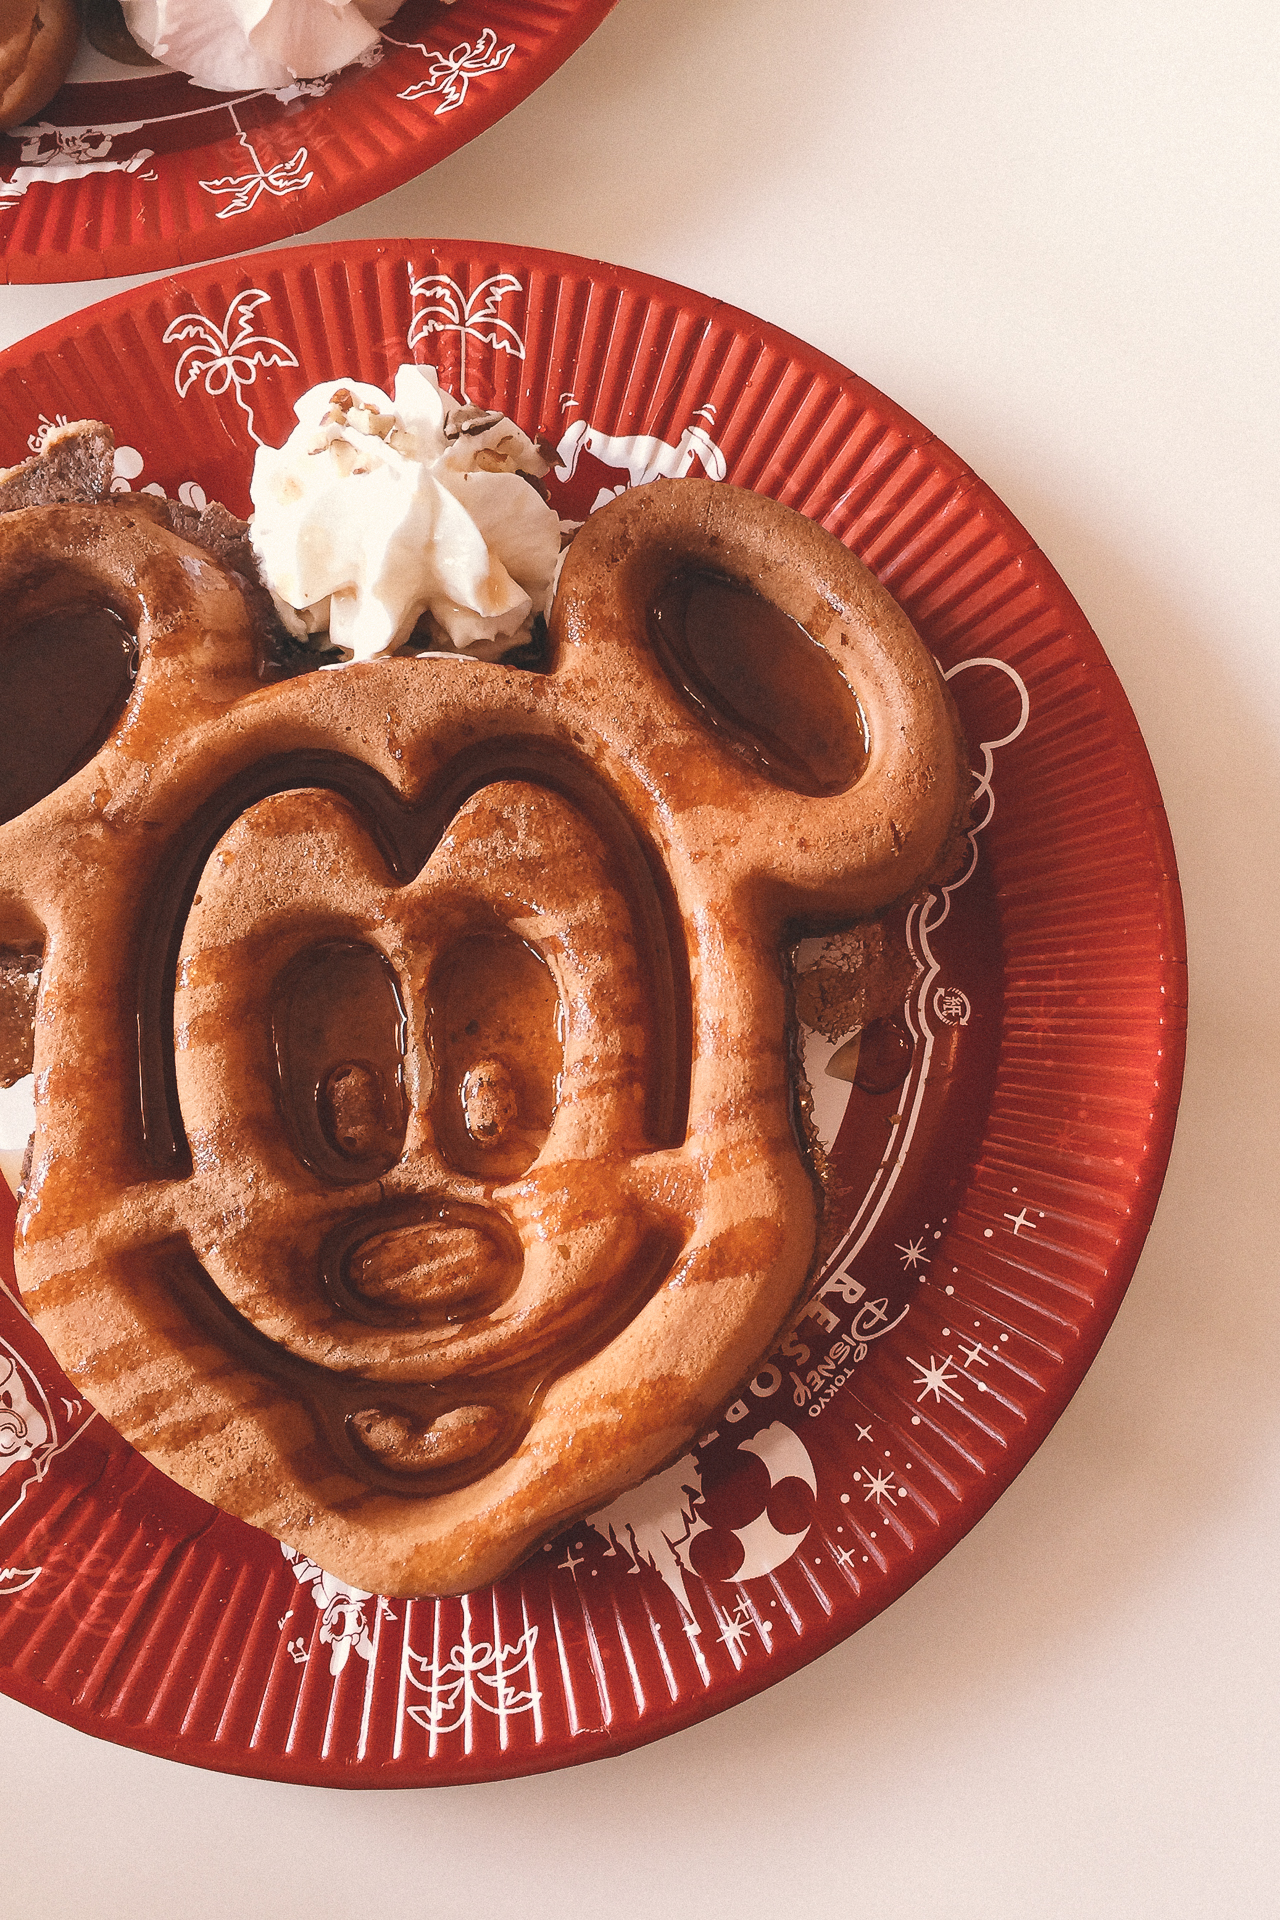 Mickey Mouse Waffle from the Great American Waffle Company  (¥450) While Mickey waffles can be found at all the Disney resorts worldwide, here at Tokyo Disneyland you can enjoy delightful toppings like strawberries & custard or red bean & matcha. It's a great way to start your day, especially if you're too busy chasing characters to eat a proper meal. If you have a moment,  watch the Cast Members prep  the waffles because it's quite amusing.